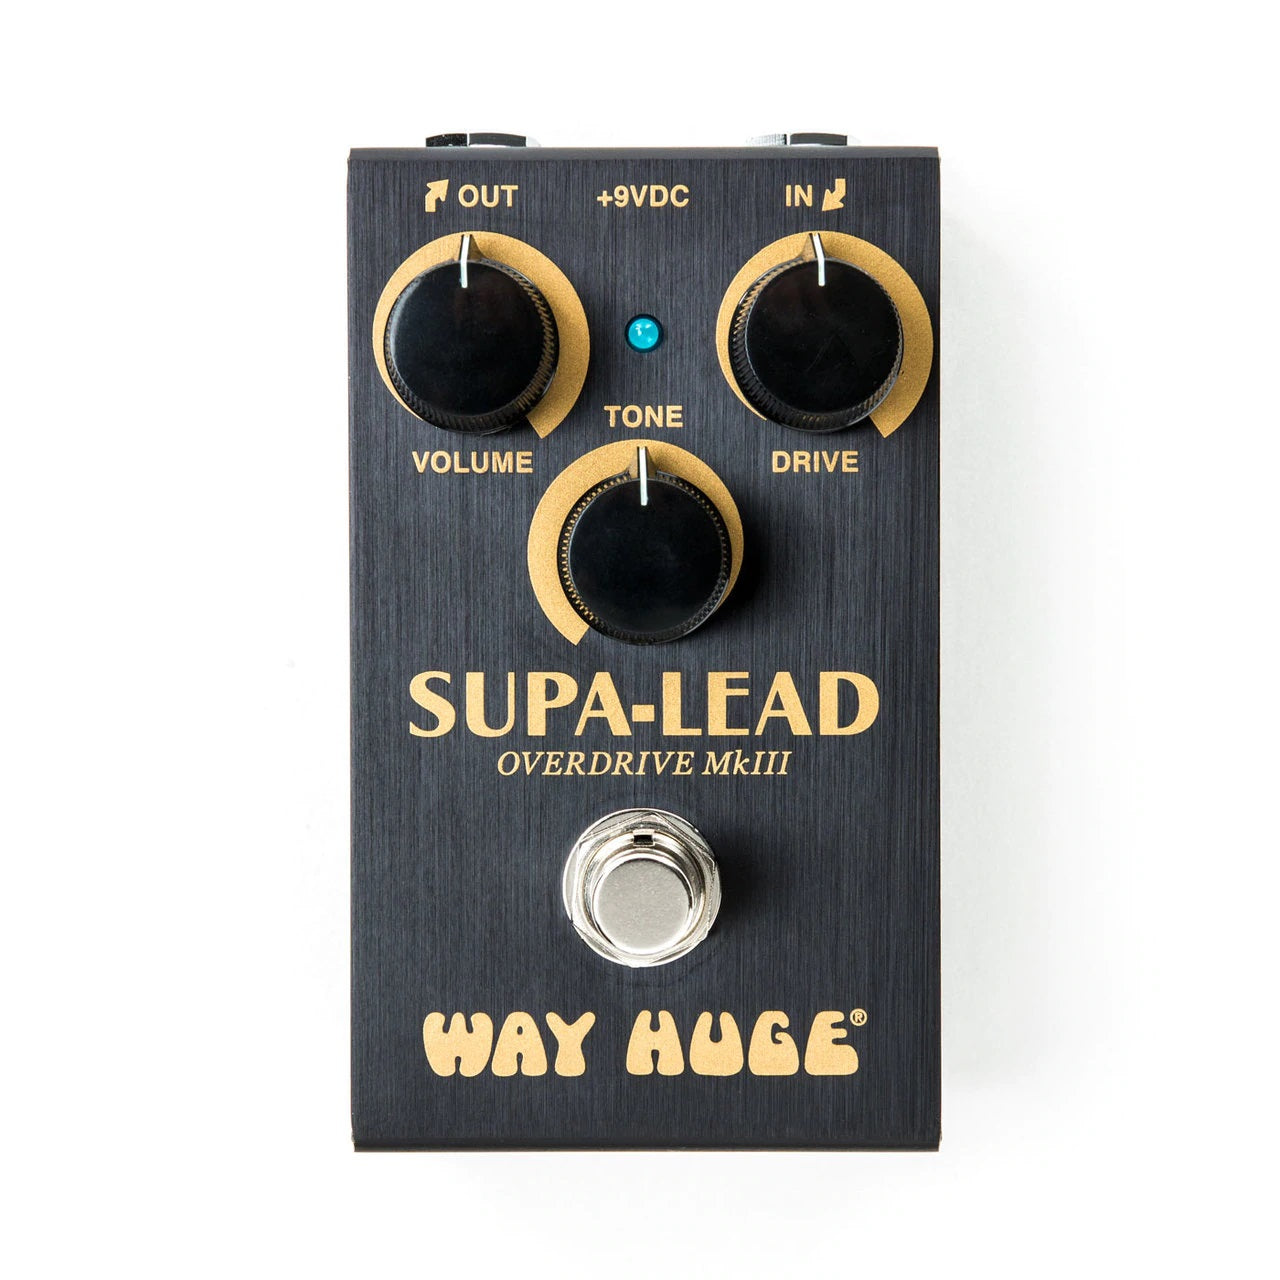 Way Huge WM31 Smalls Supa-Lead Overdrive Mini Pedal (Pre-Order) - Gears For Ears